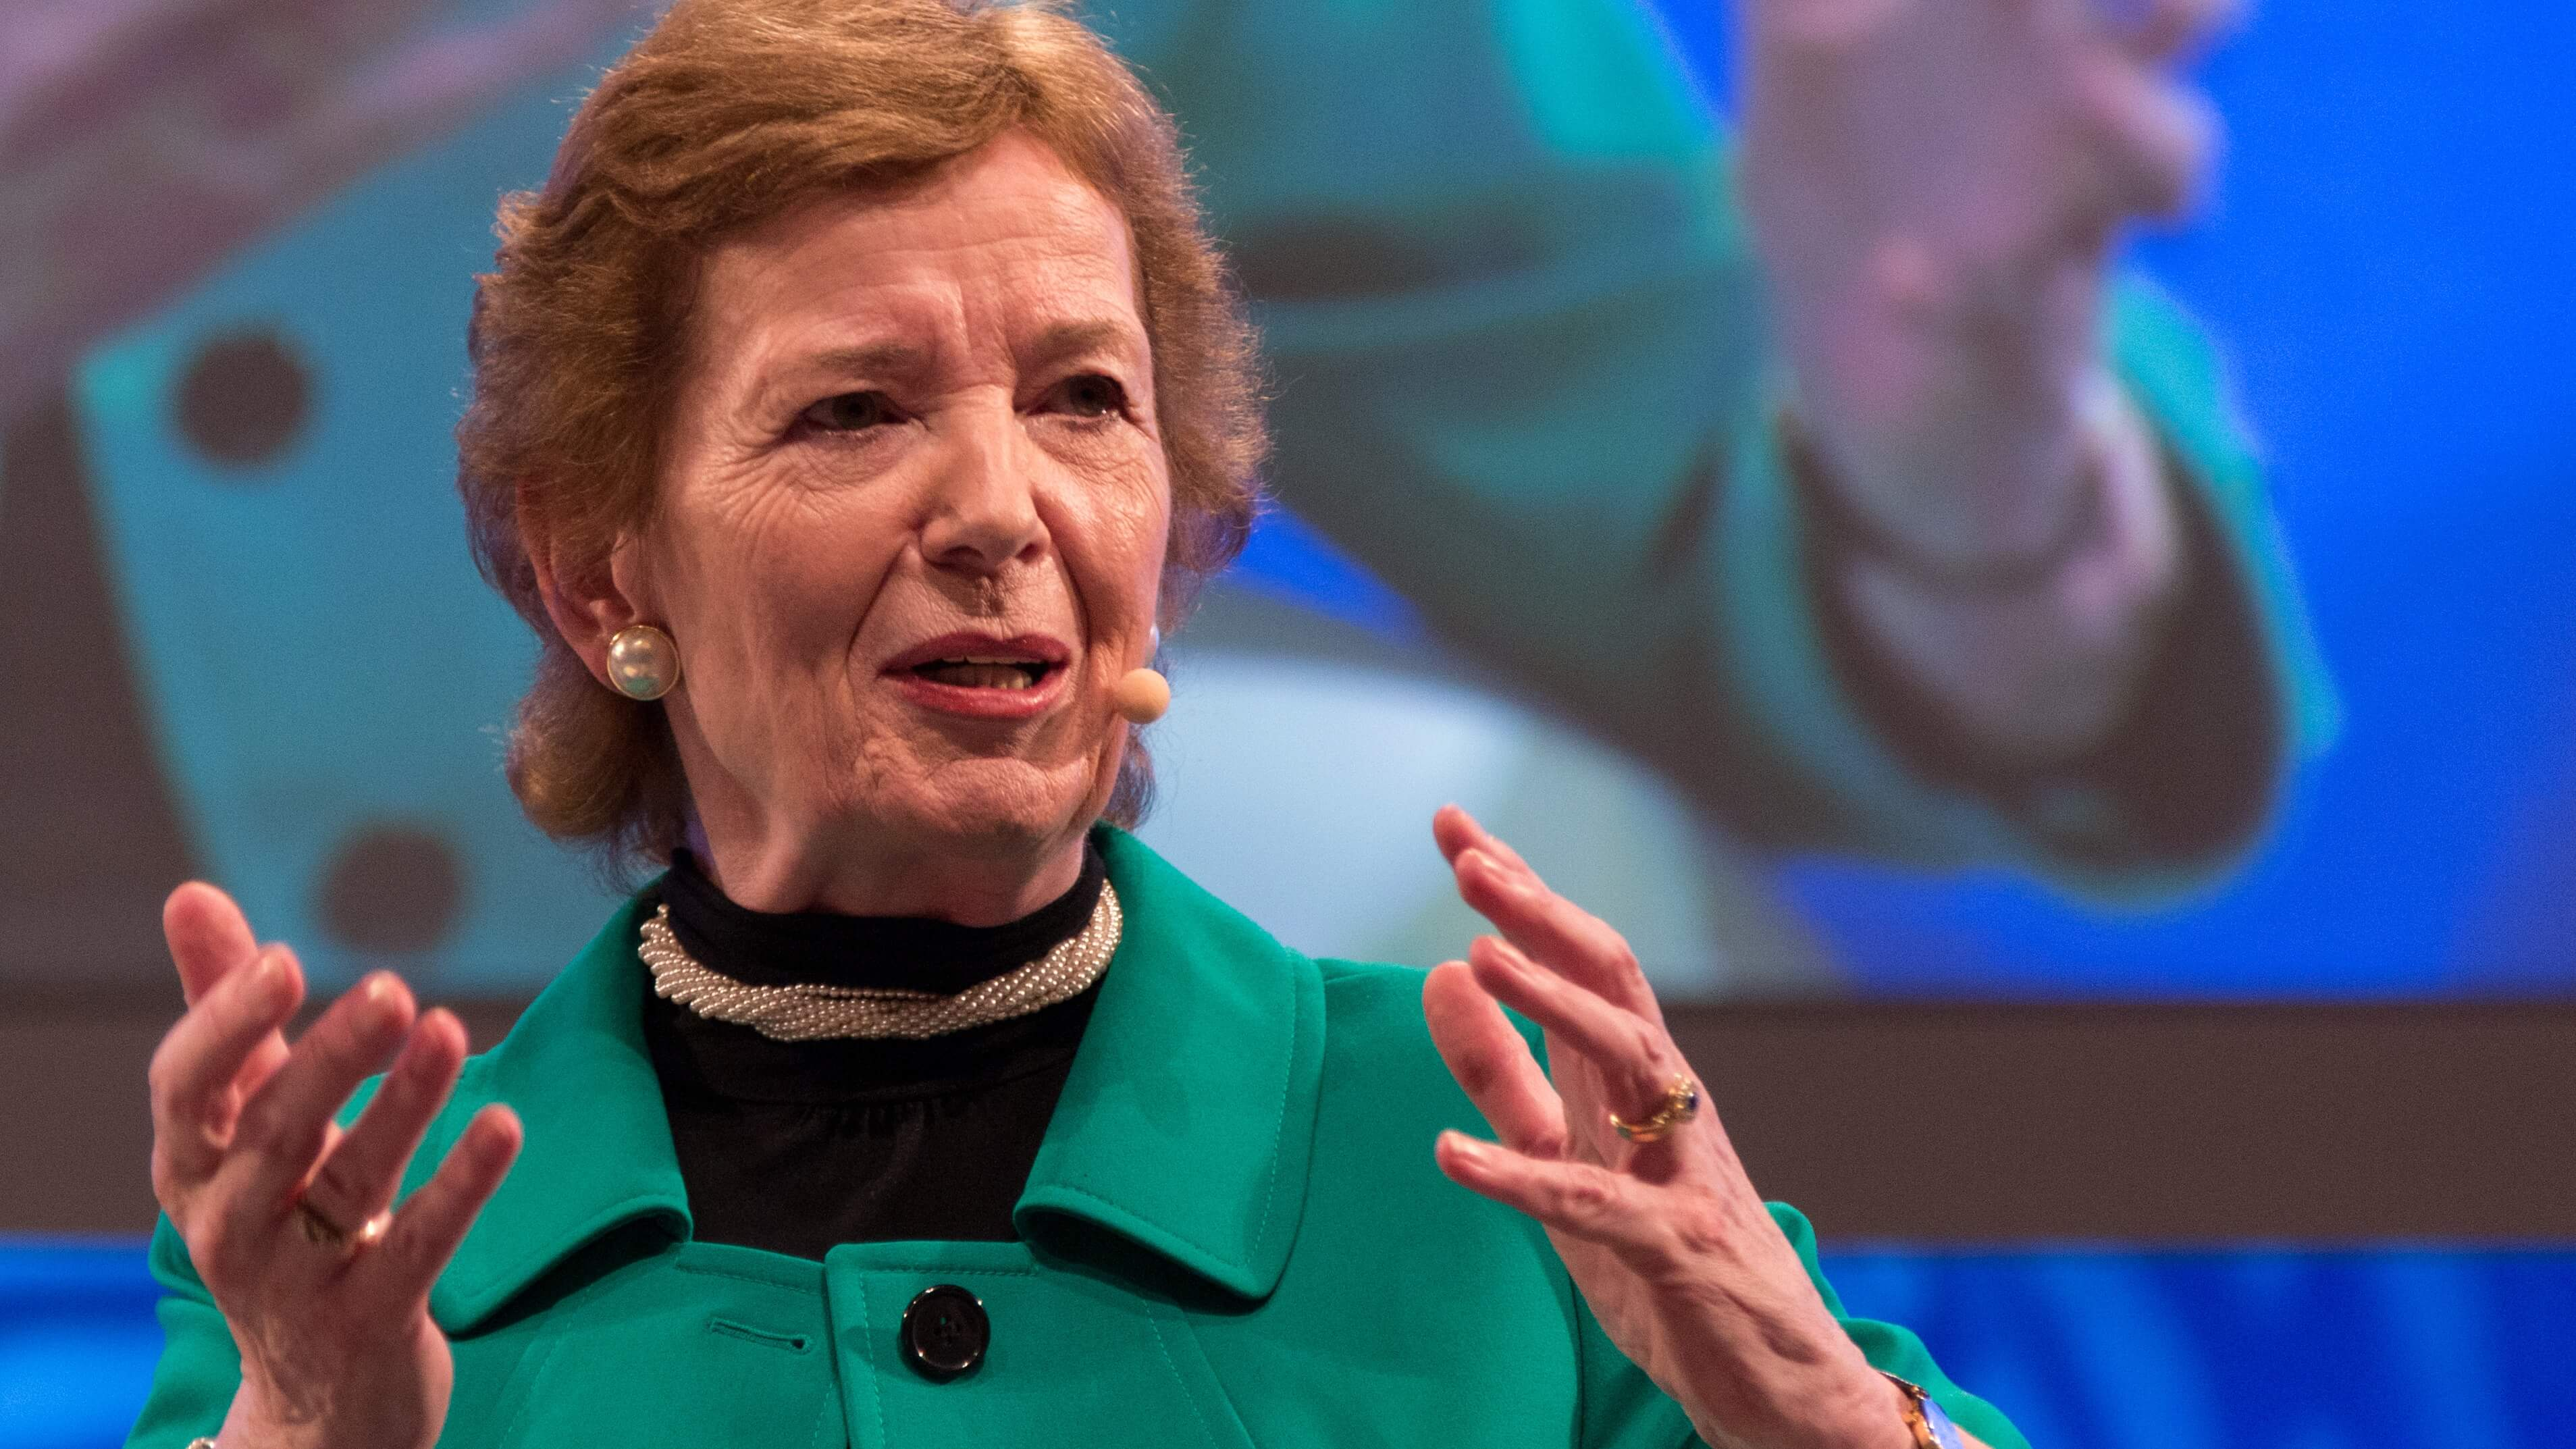 Ireland's Former President Mary Robinson Urges Nation to Fight Climate Change By Reducing Meat Consumption